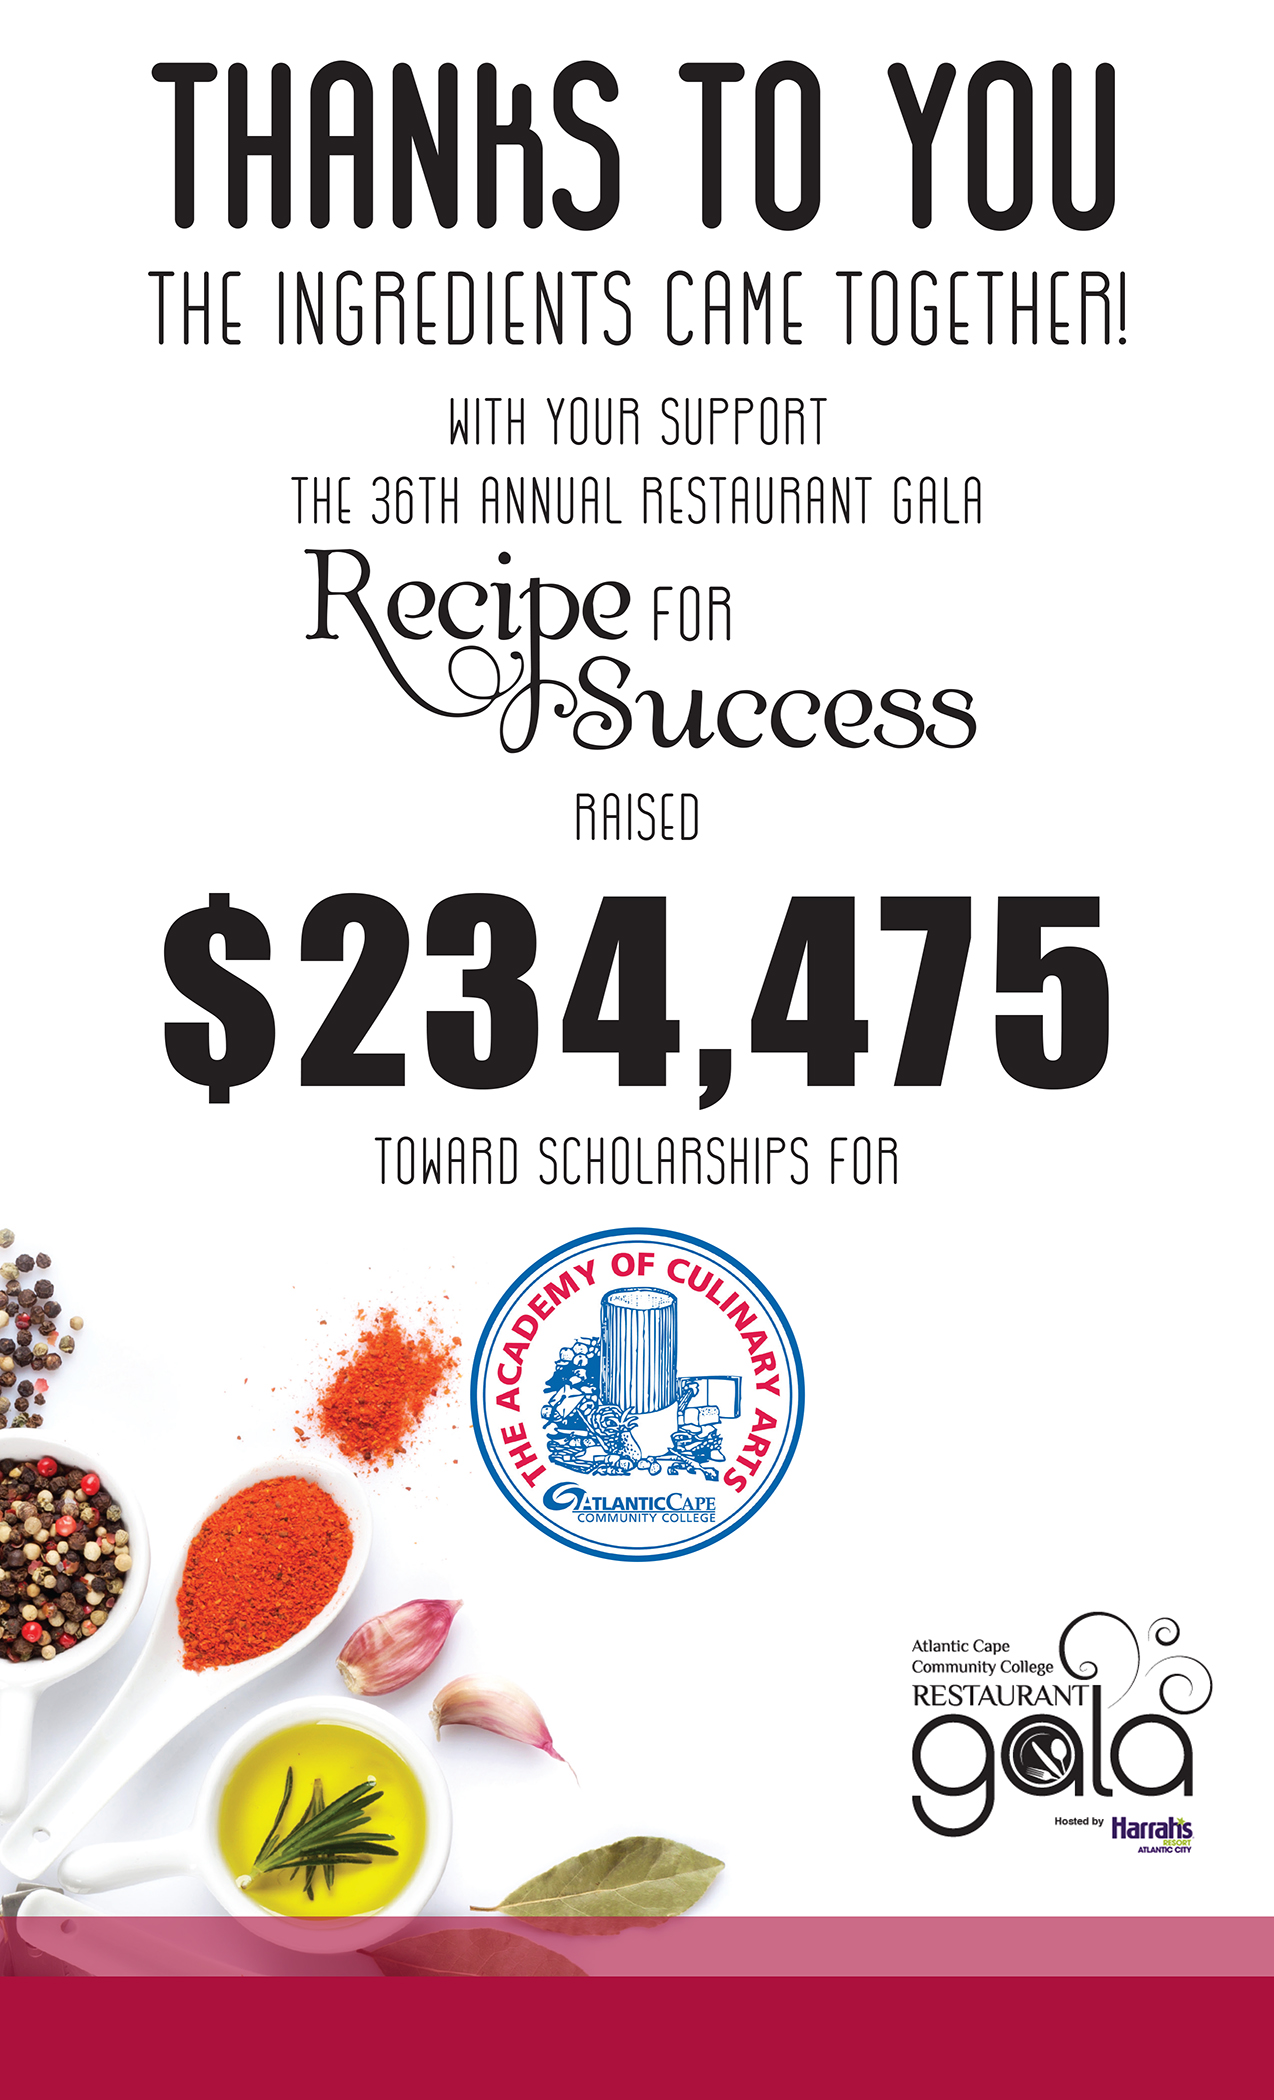 Thanks to you the ingredients came together! With your support the 36th Annual Restaurant Gala Recipe for Success raised $234,475 toward scholarships